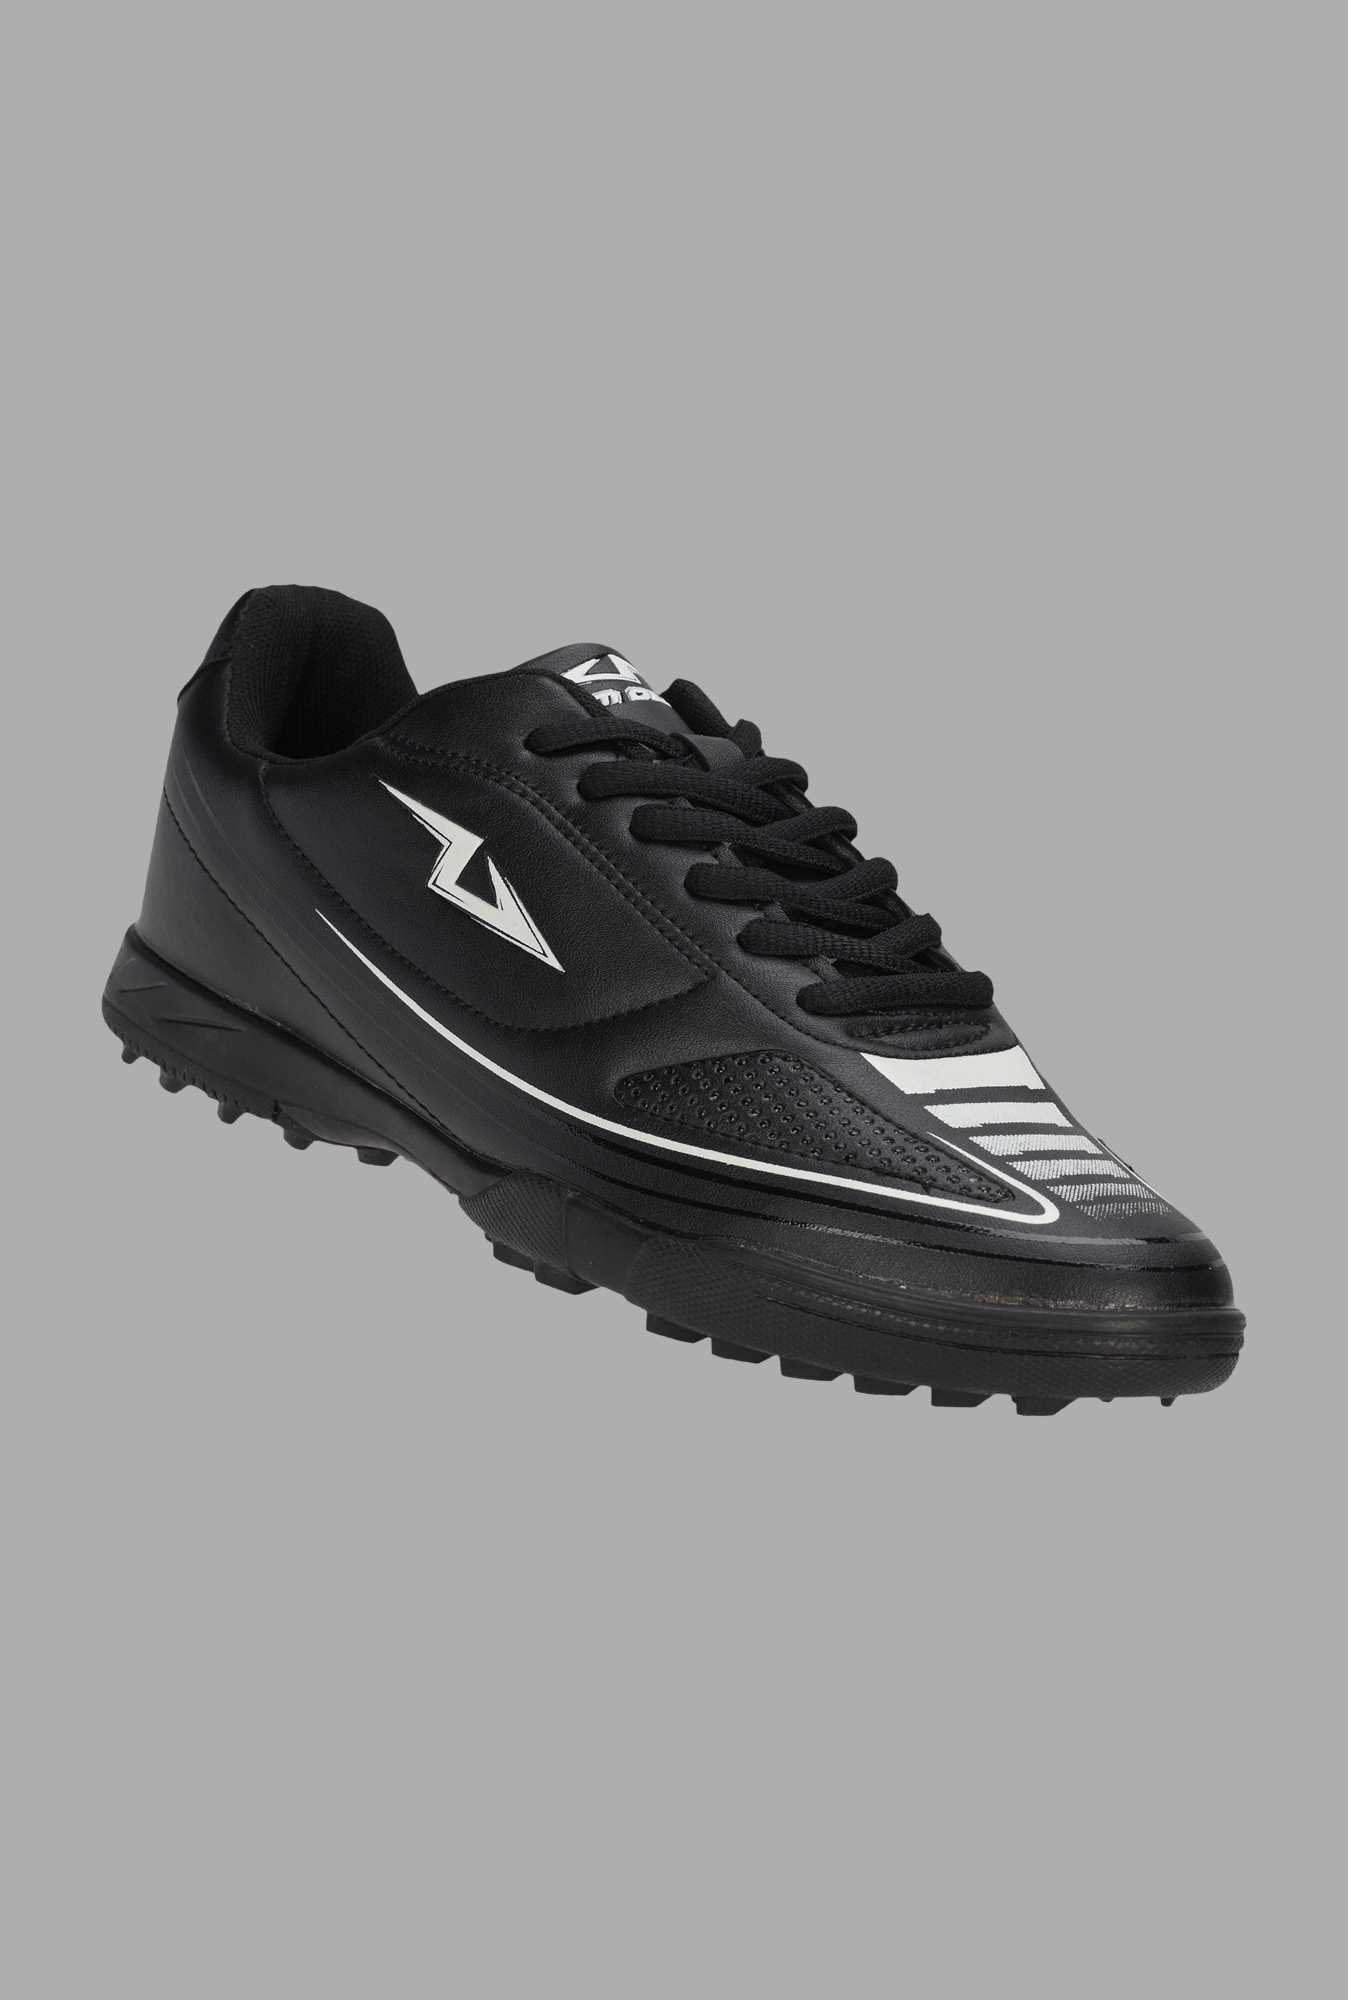 Team Quest Black Lace Up Football Shoes